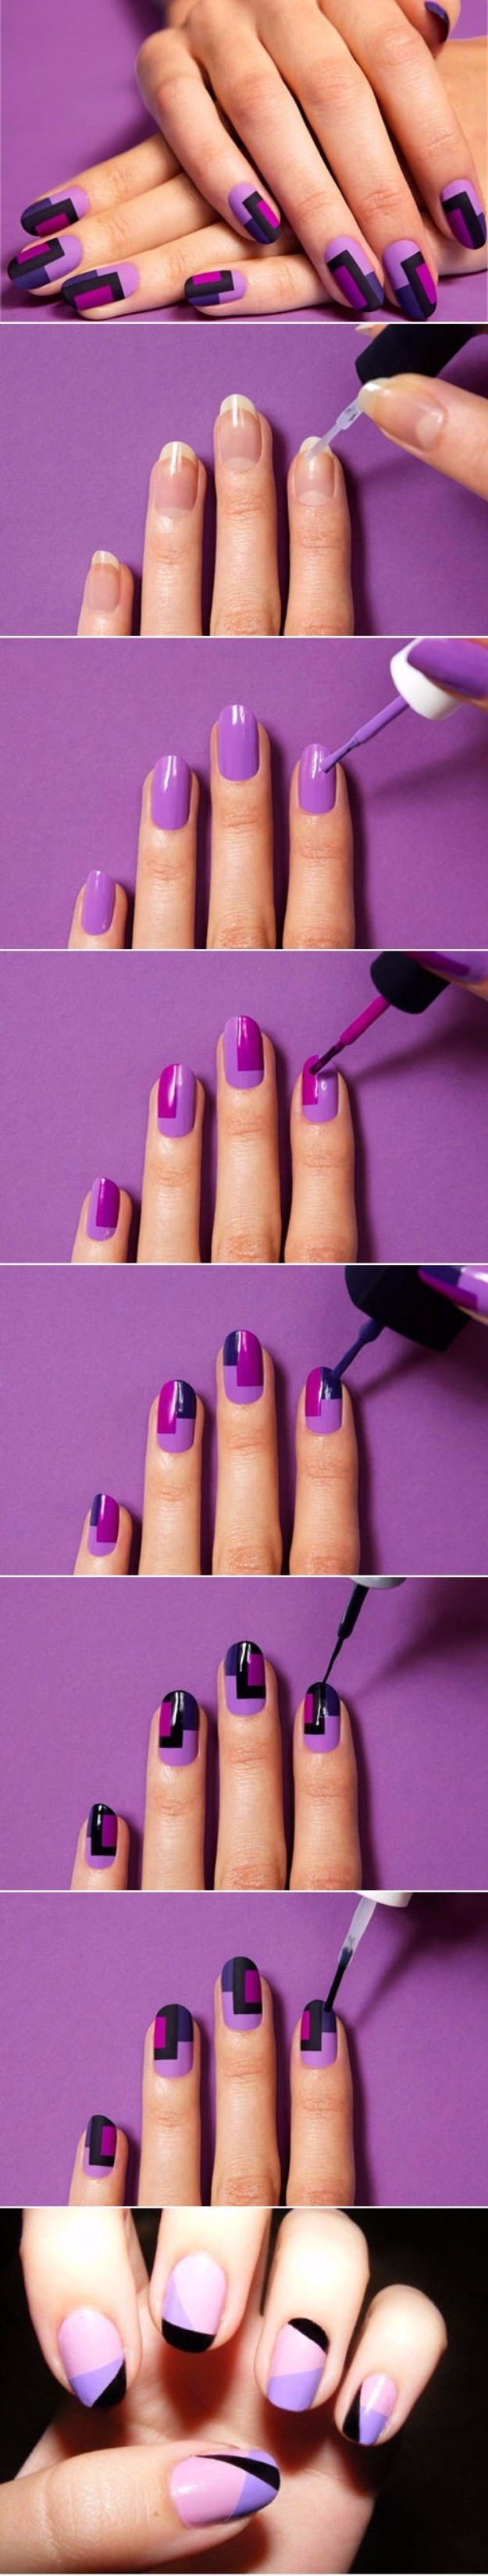 Quick Nail Art Ideas - DIY Colorful Fashion Nails - Easy Step by Step Nail Designs With Tutorials and Instructions - Simple Photos Show You How To Get A Perfect Manicure at Home - Cool Beauty Tips and Tricks for Women and Teens